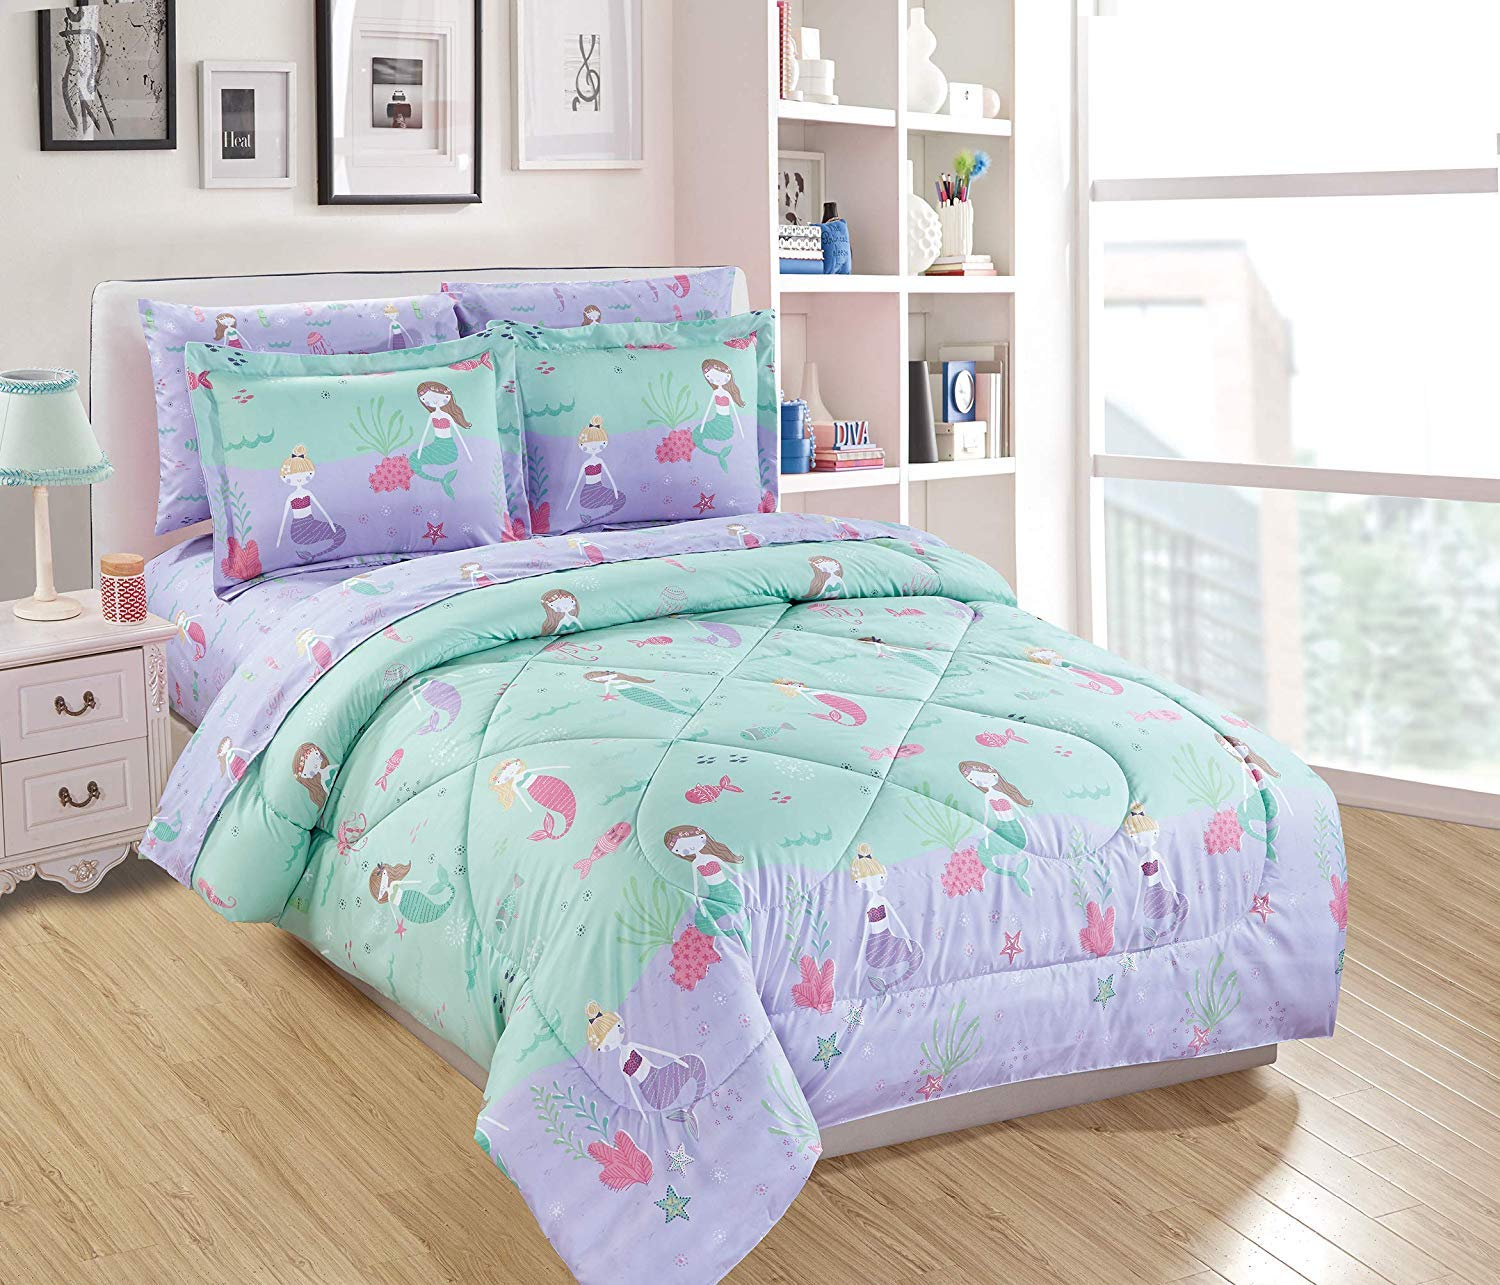 Mk Home 7pc Queen Size Comforter Set for Girls Mermaids Fishes Aqua Lavender Pink New by Mk Home LLC